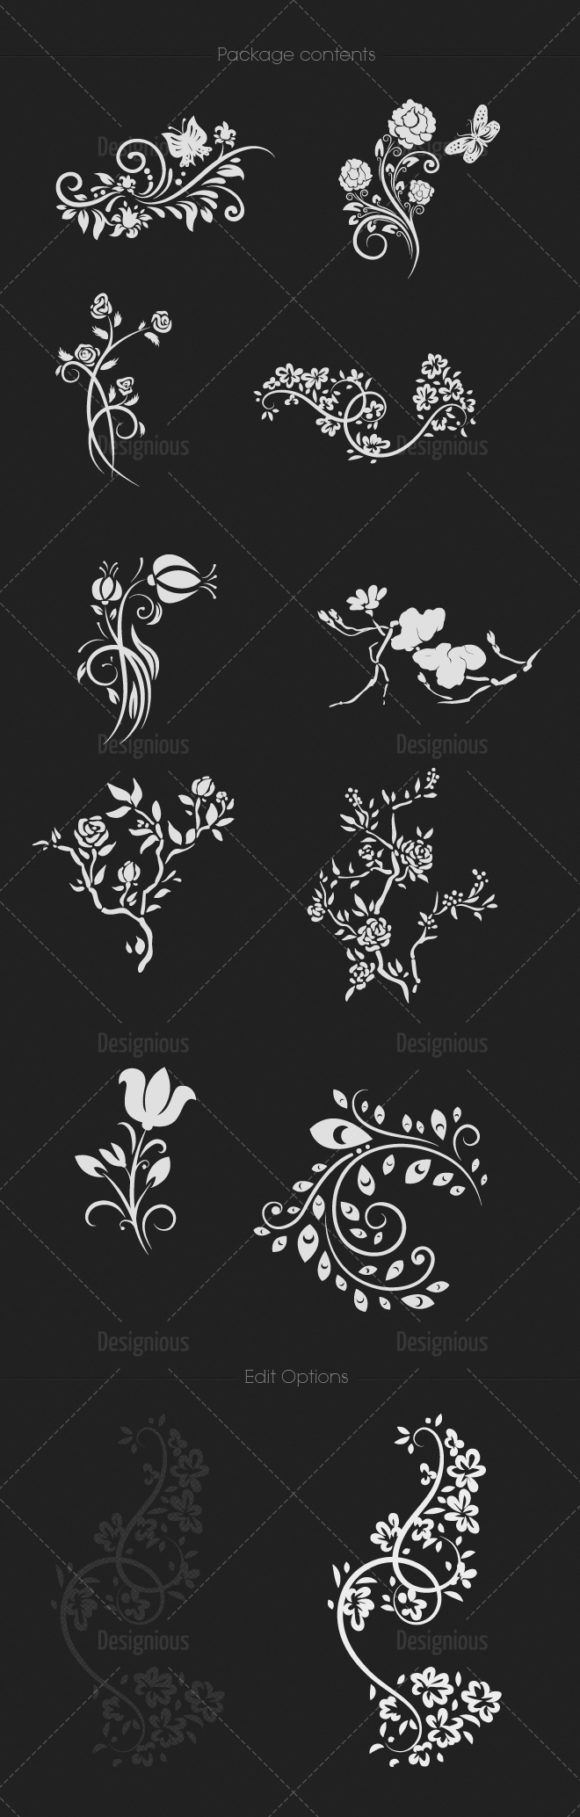 Chinese Ornaments Vector Pack 1 Oriental Art [tag]